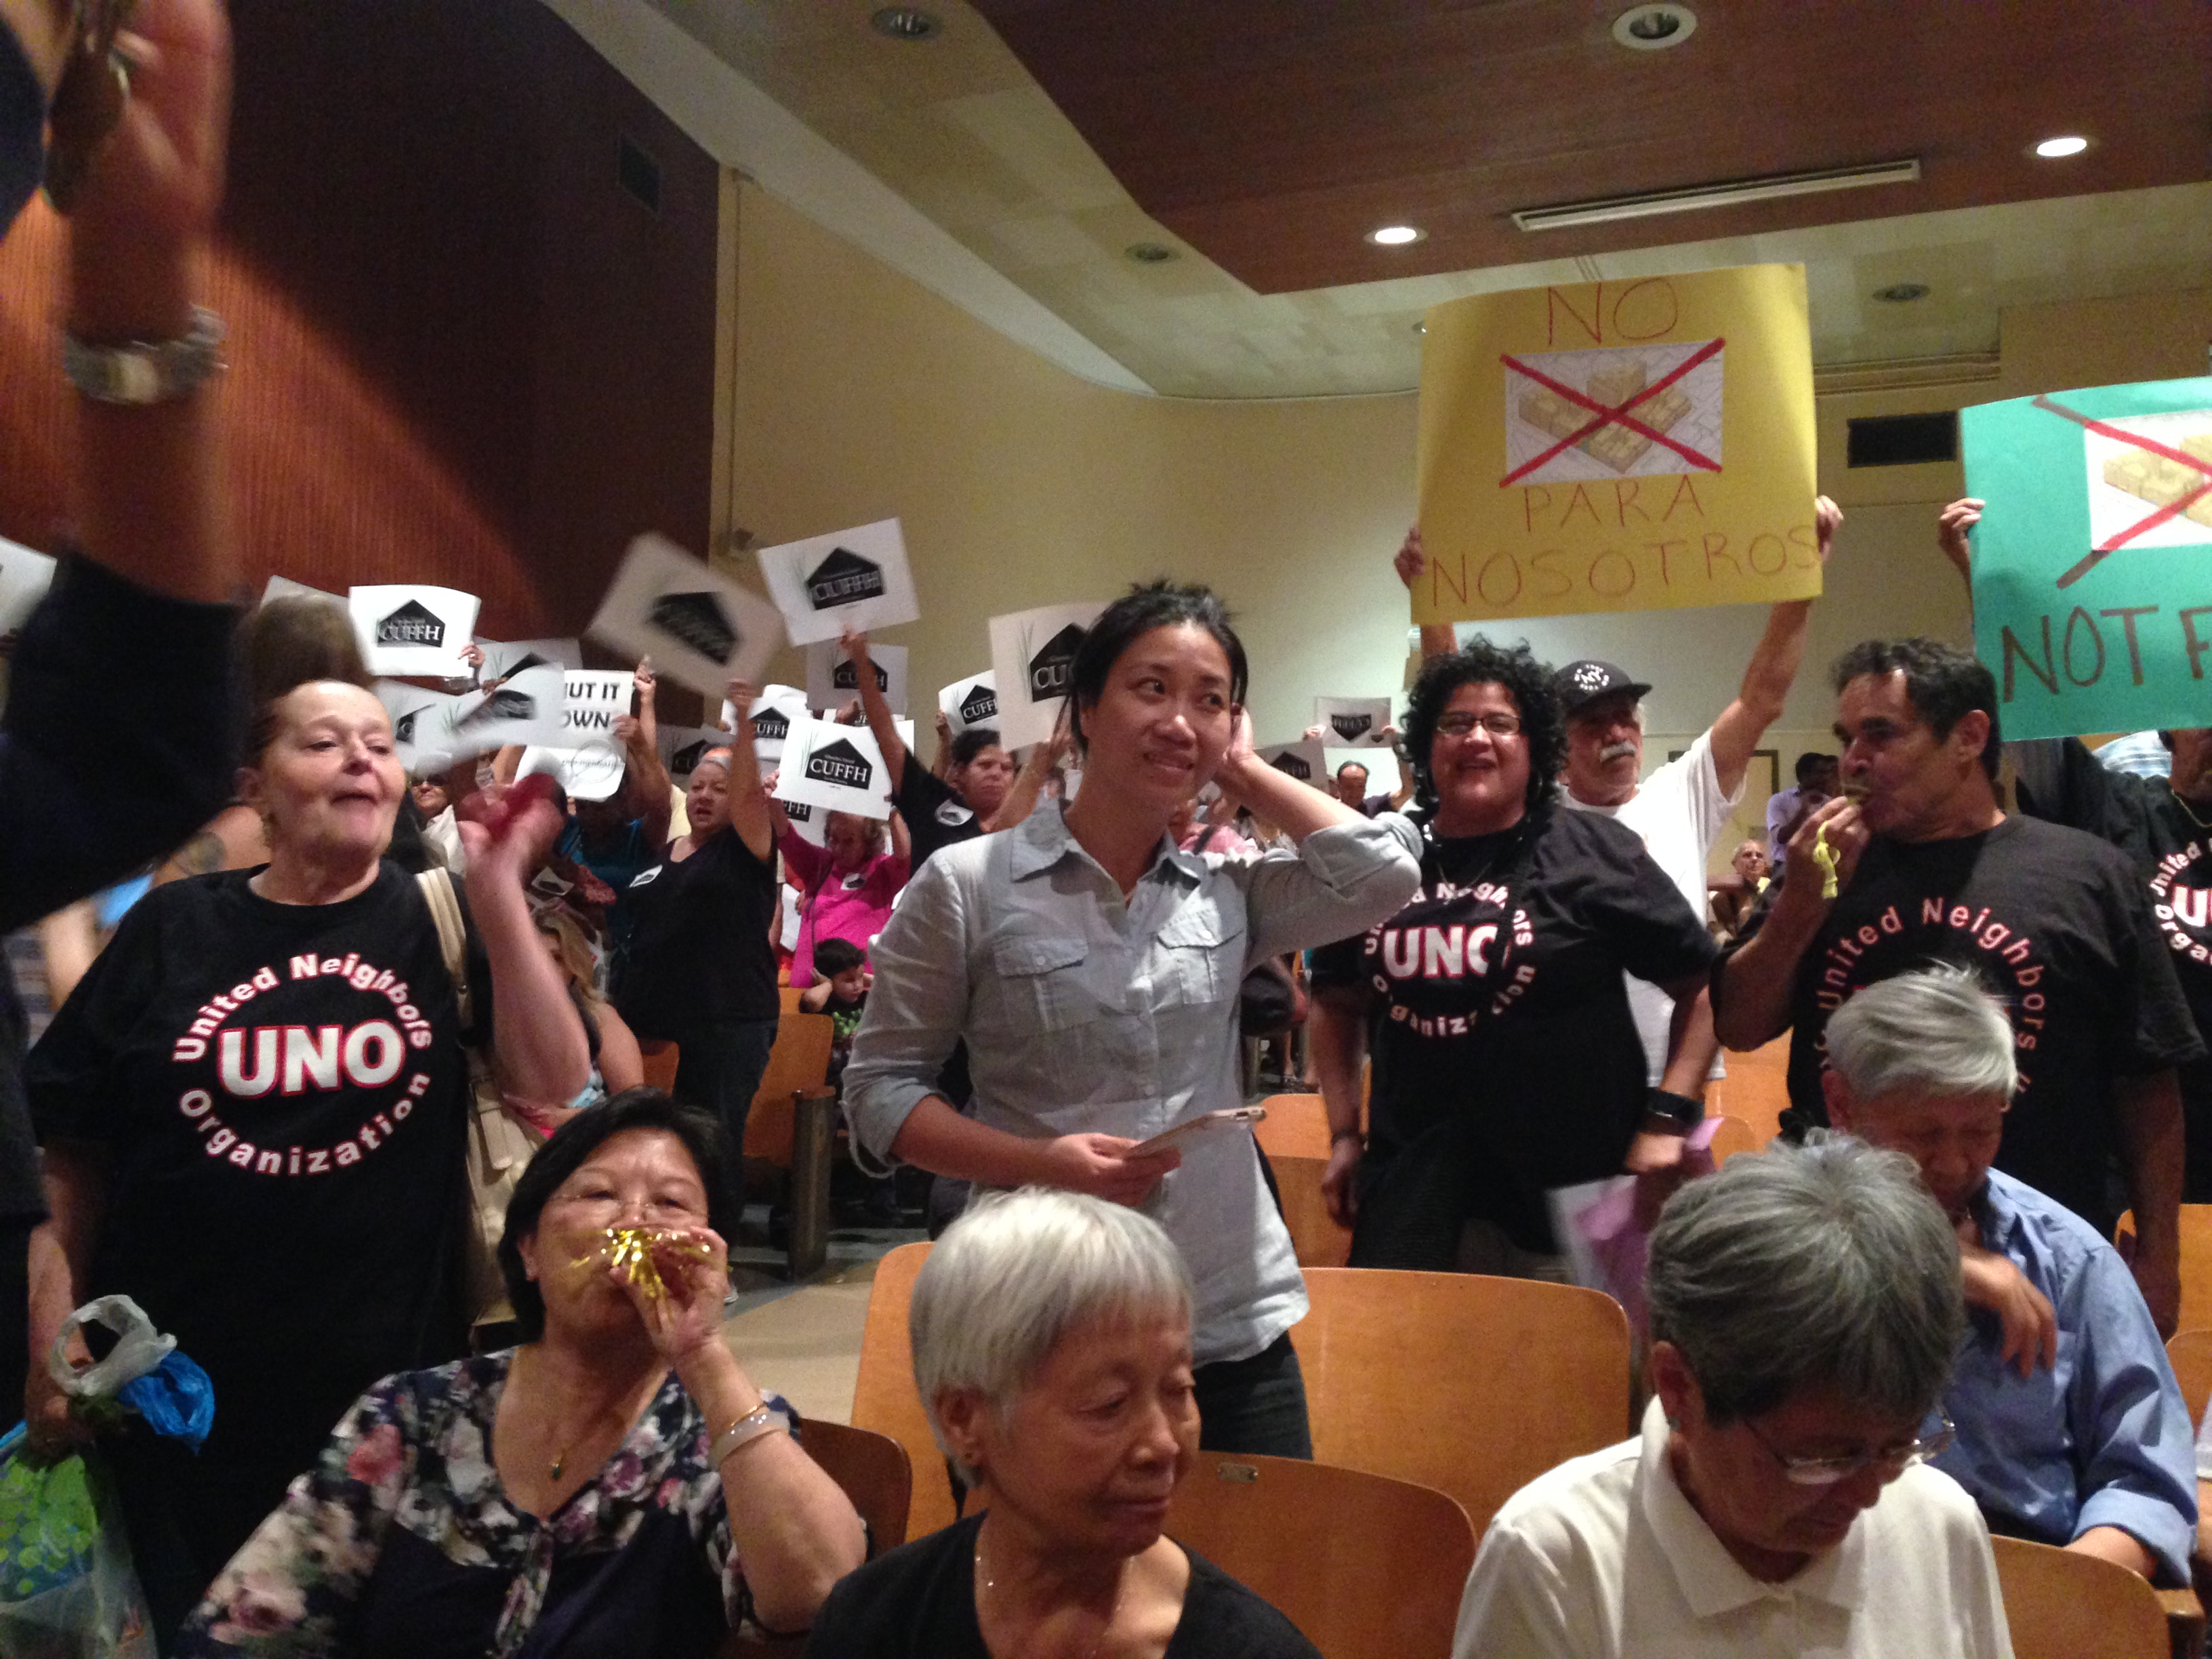 More protesters from last night's meeting.